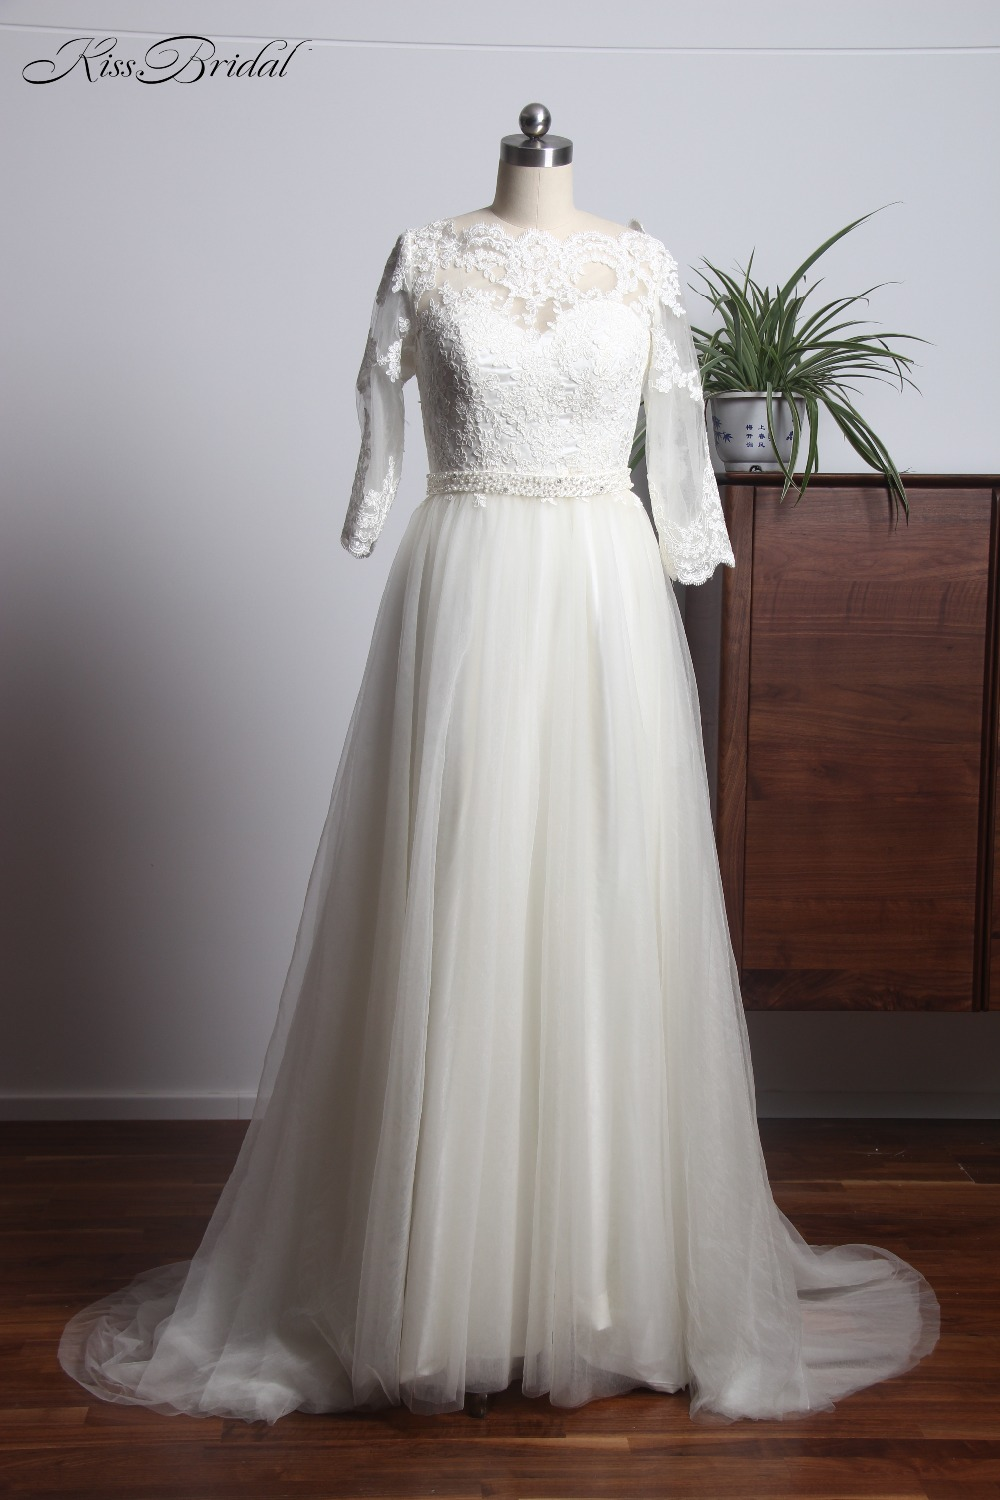 Modest Style 3/4 Sleeve Lace Tulle Wedding Dresses 2018 Sweep Train Beading Belt Button Back Bride Wedding Gown